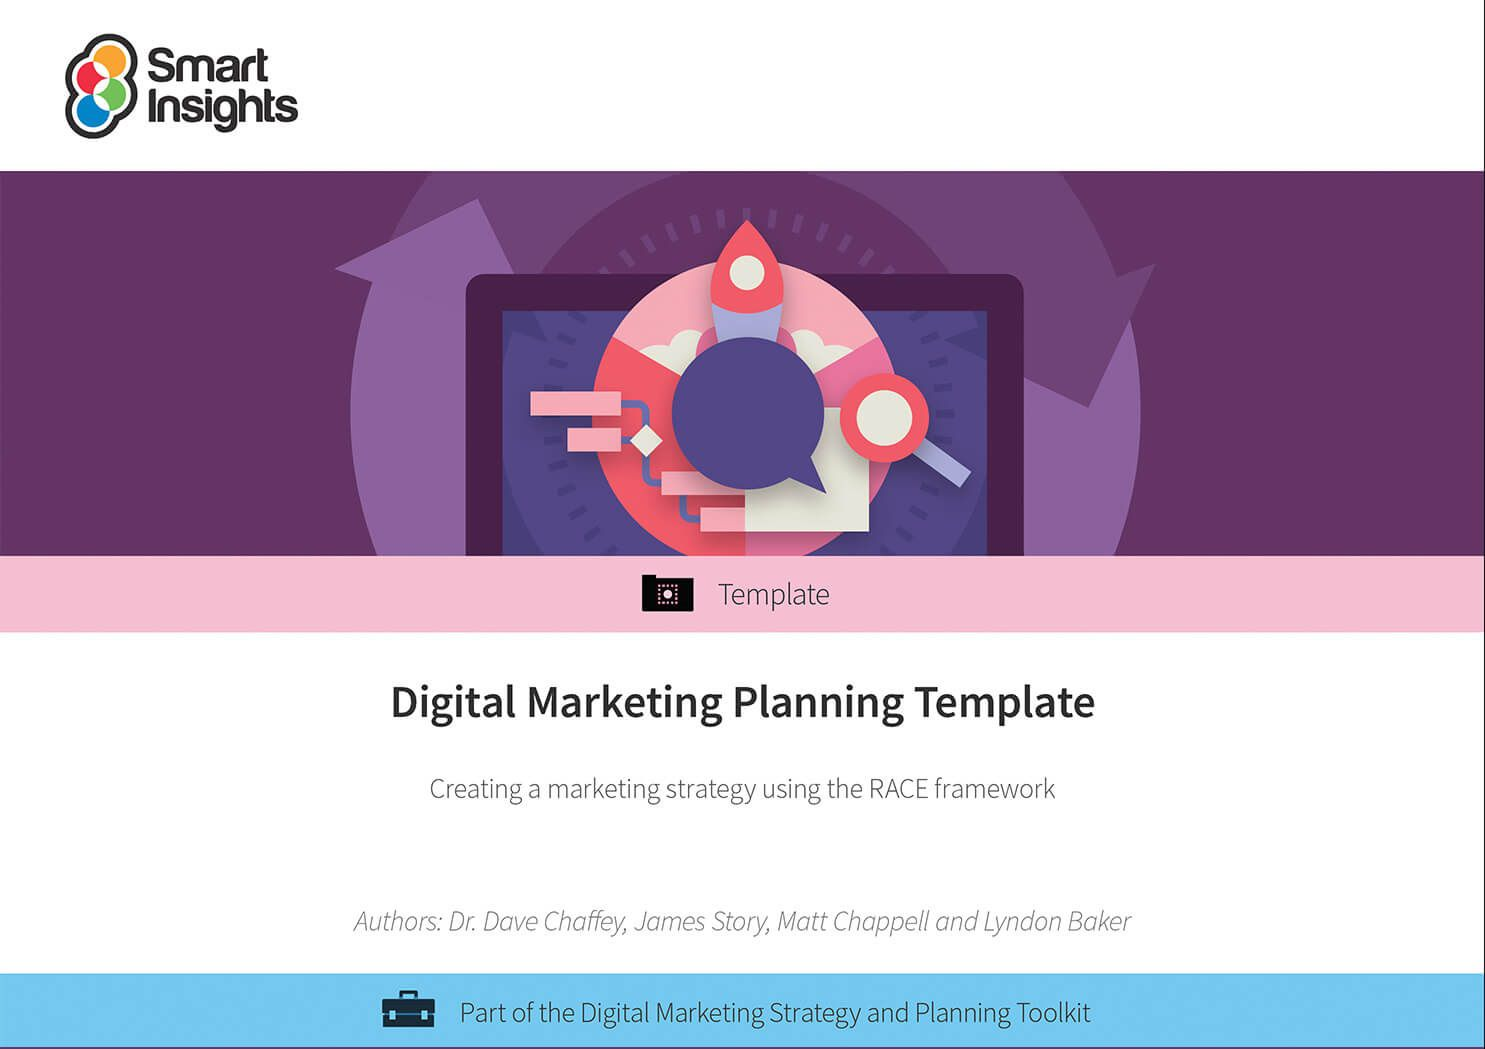 008 Impressive Digital Marketing Plan Template Free Highest Quality  Ppt DownloadFull